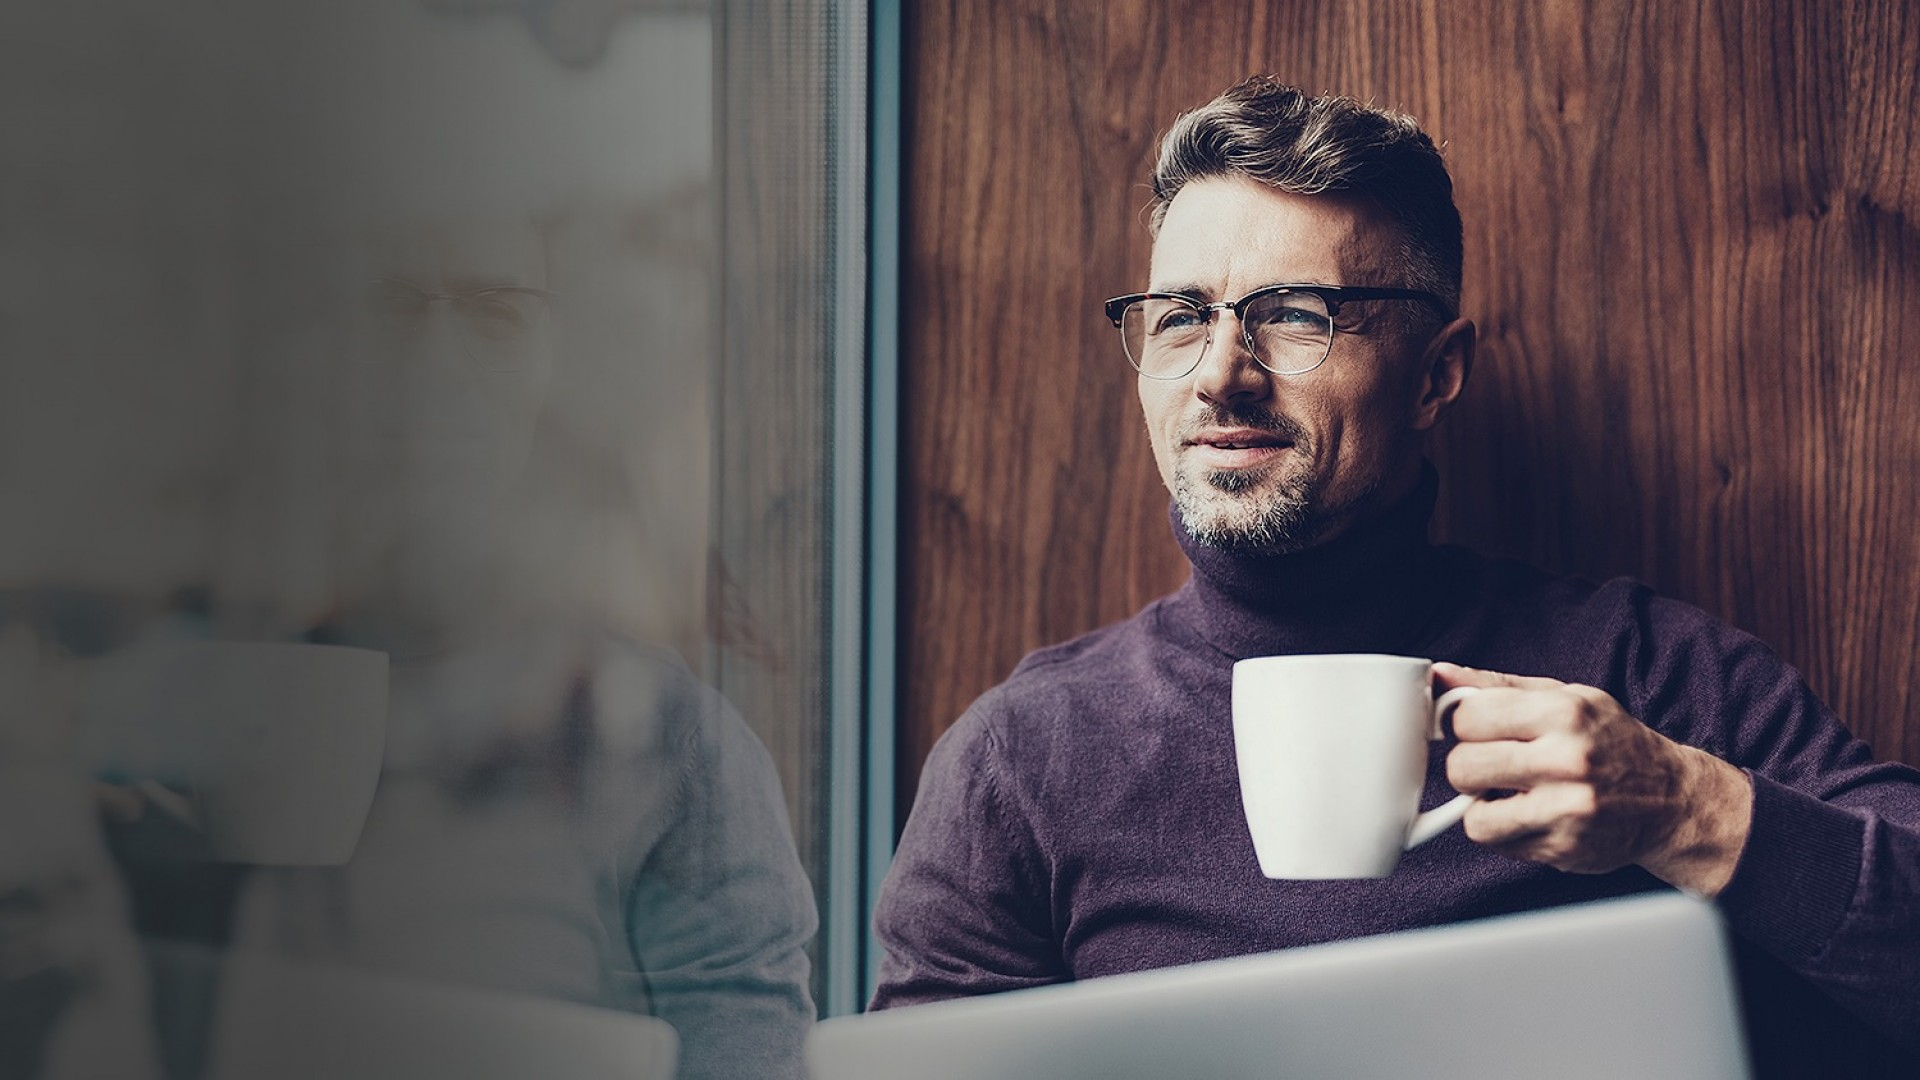 man working on computer while drinking coffee and looking through window